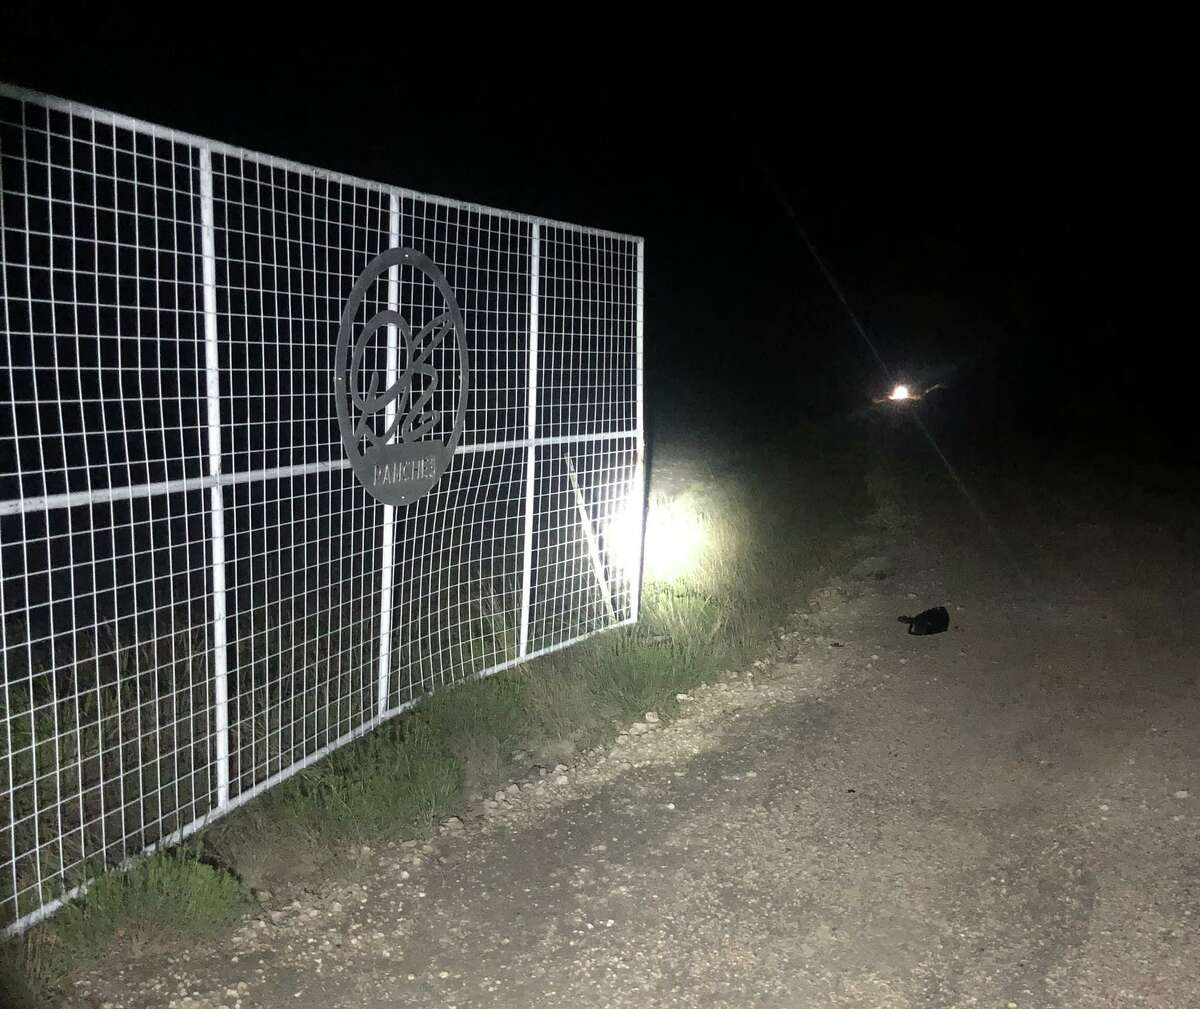 The U.S. Border Patrol announced that a stolen vehicle pursuit near Freer resulted in multiple damaged gates.